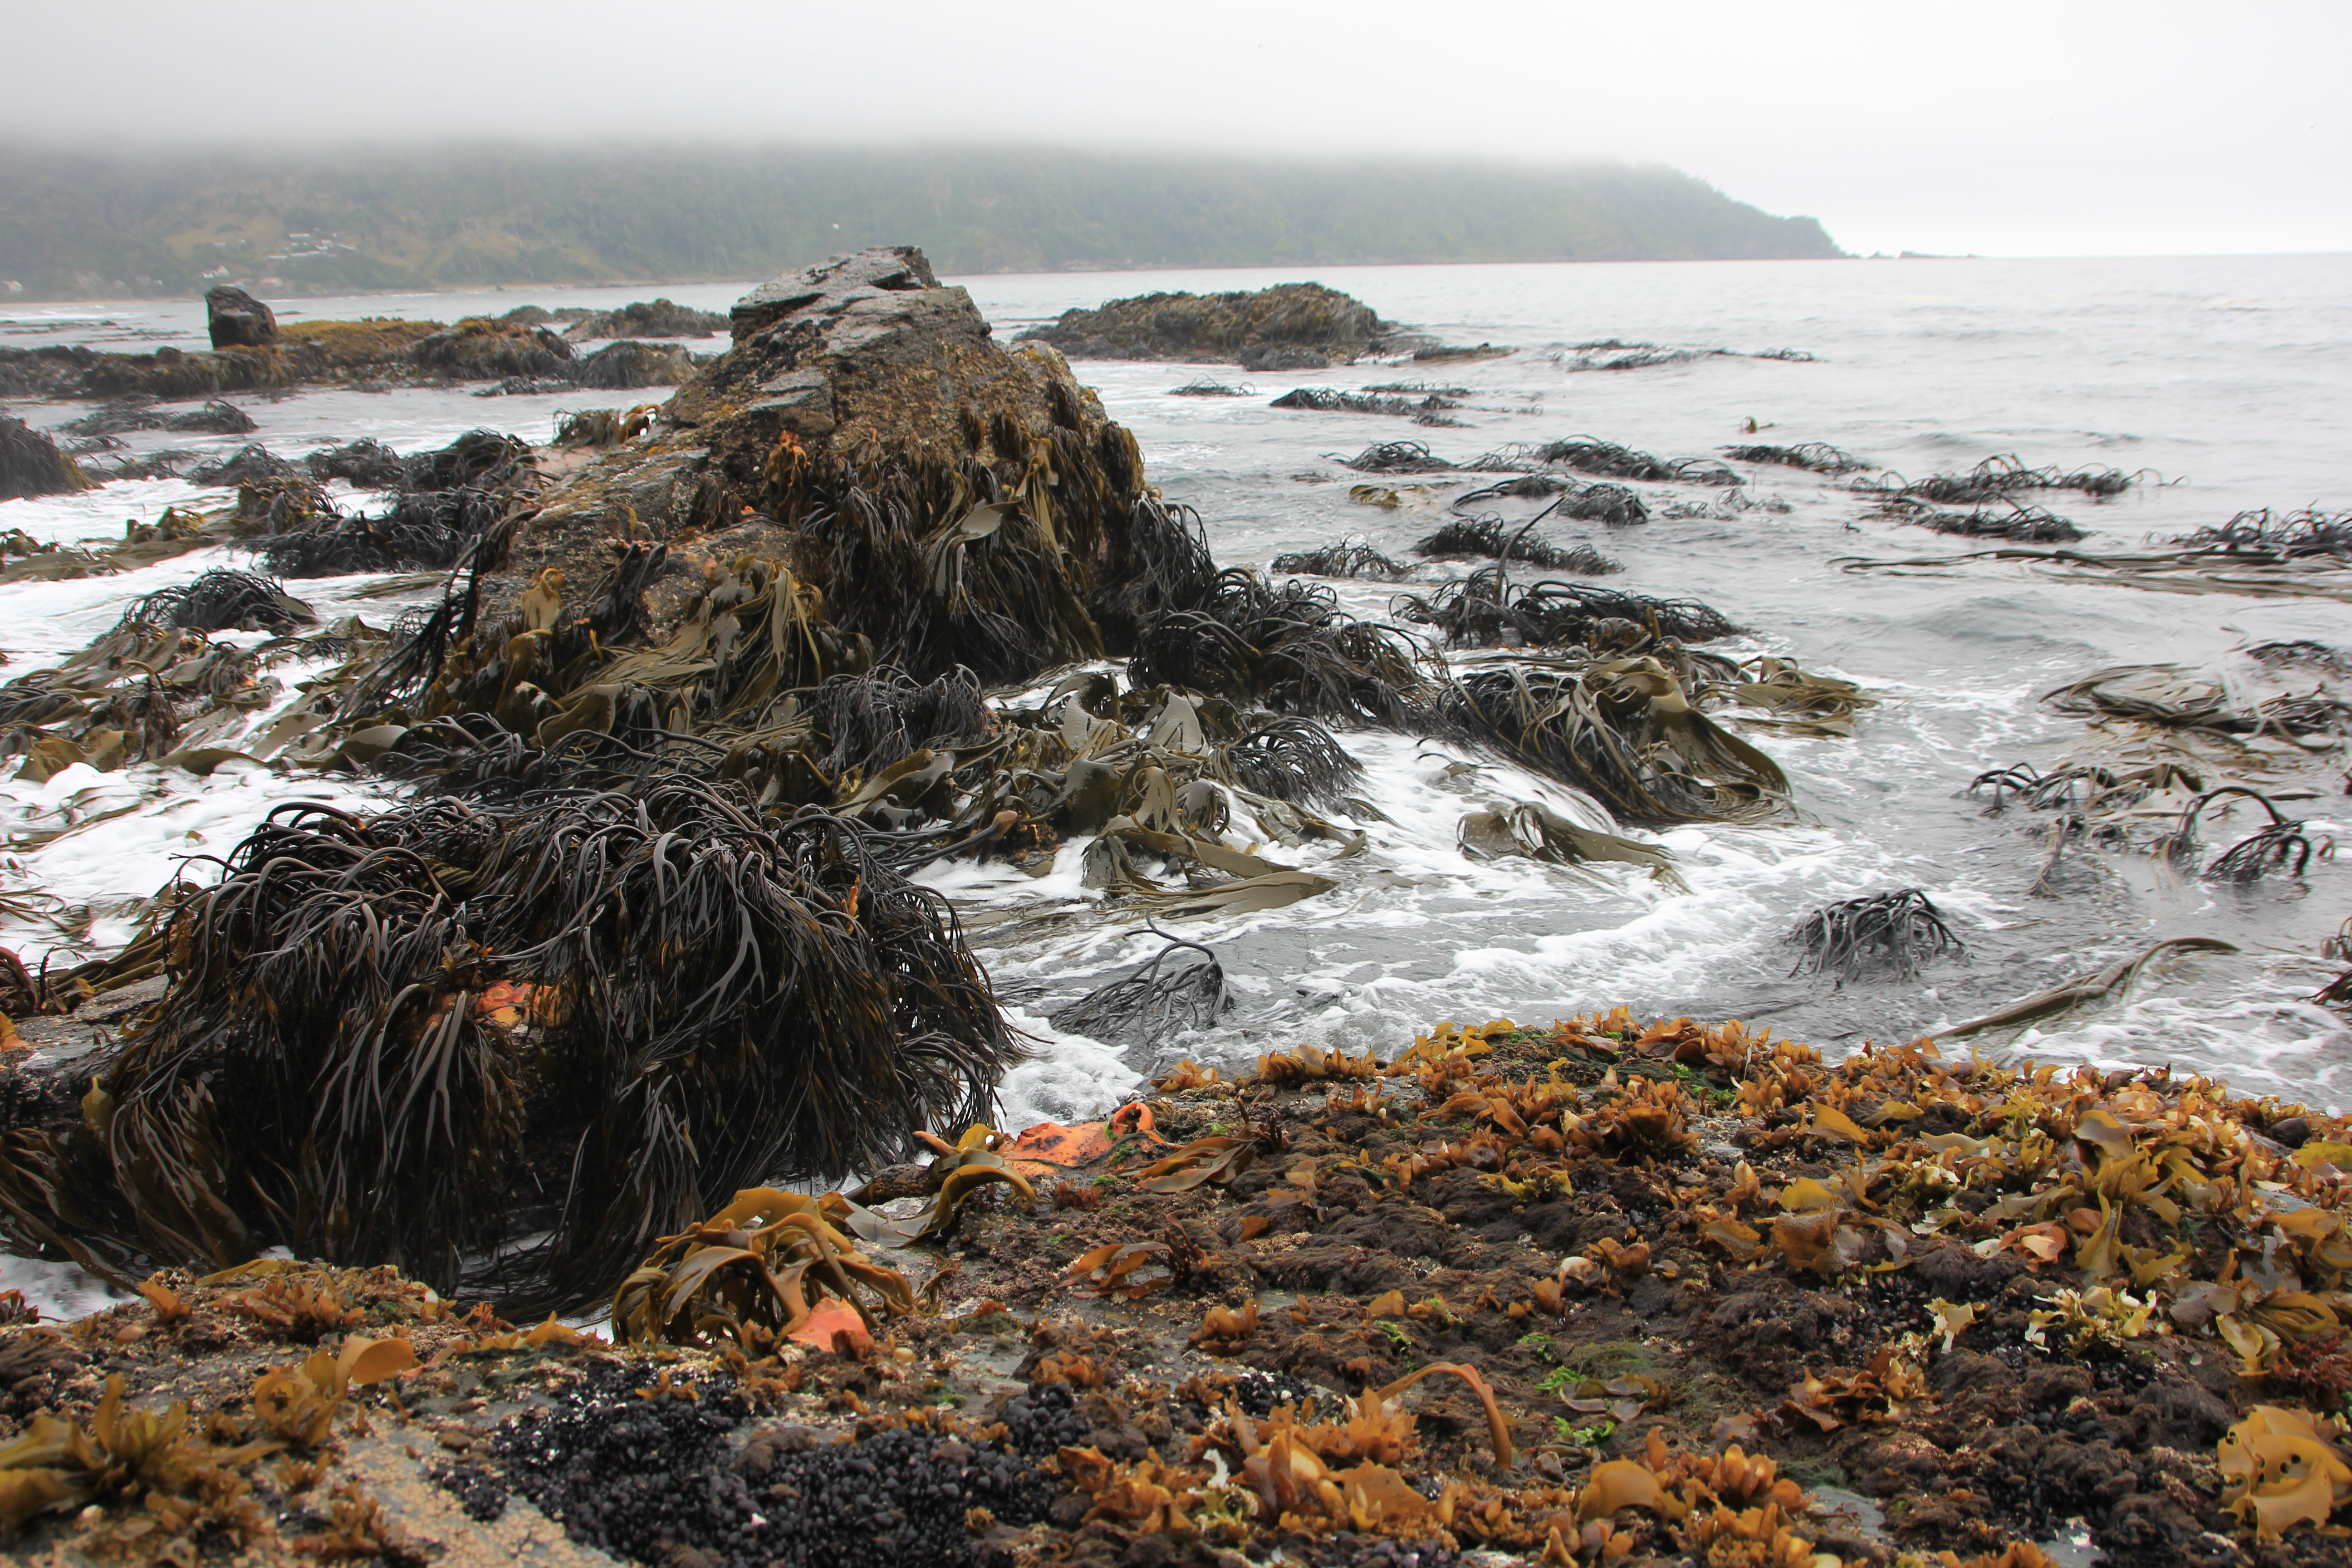 The intertidal on the exposed coast is dominated by the kelp Lessonia and the giant fucoid Durvillaea